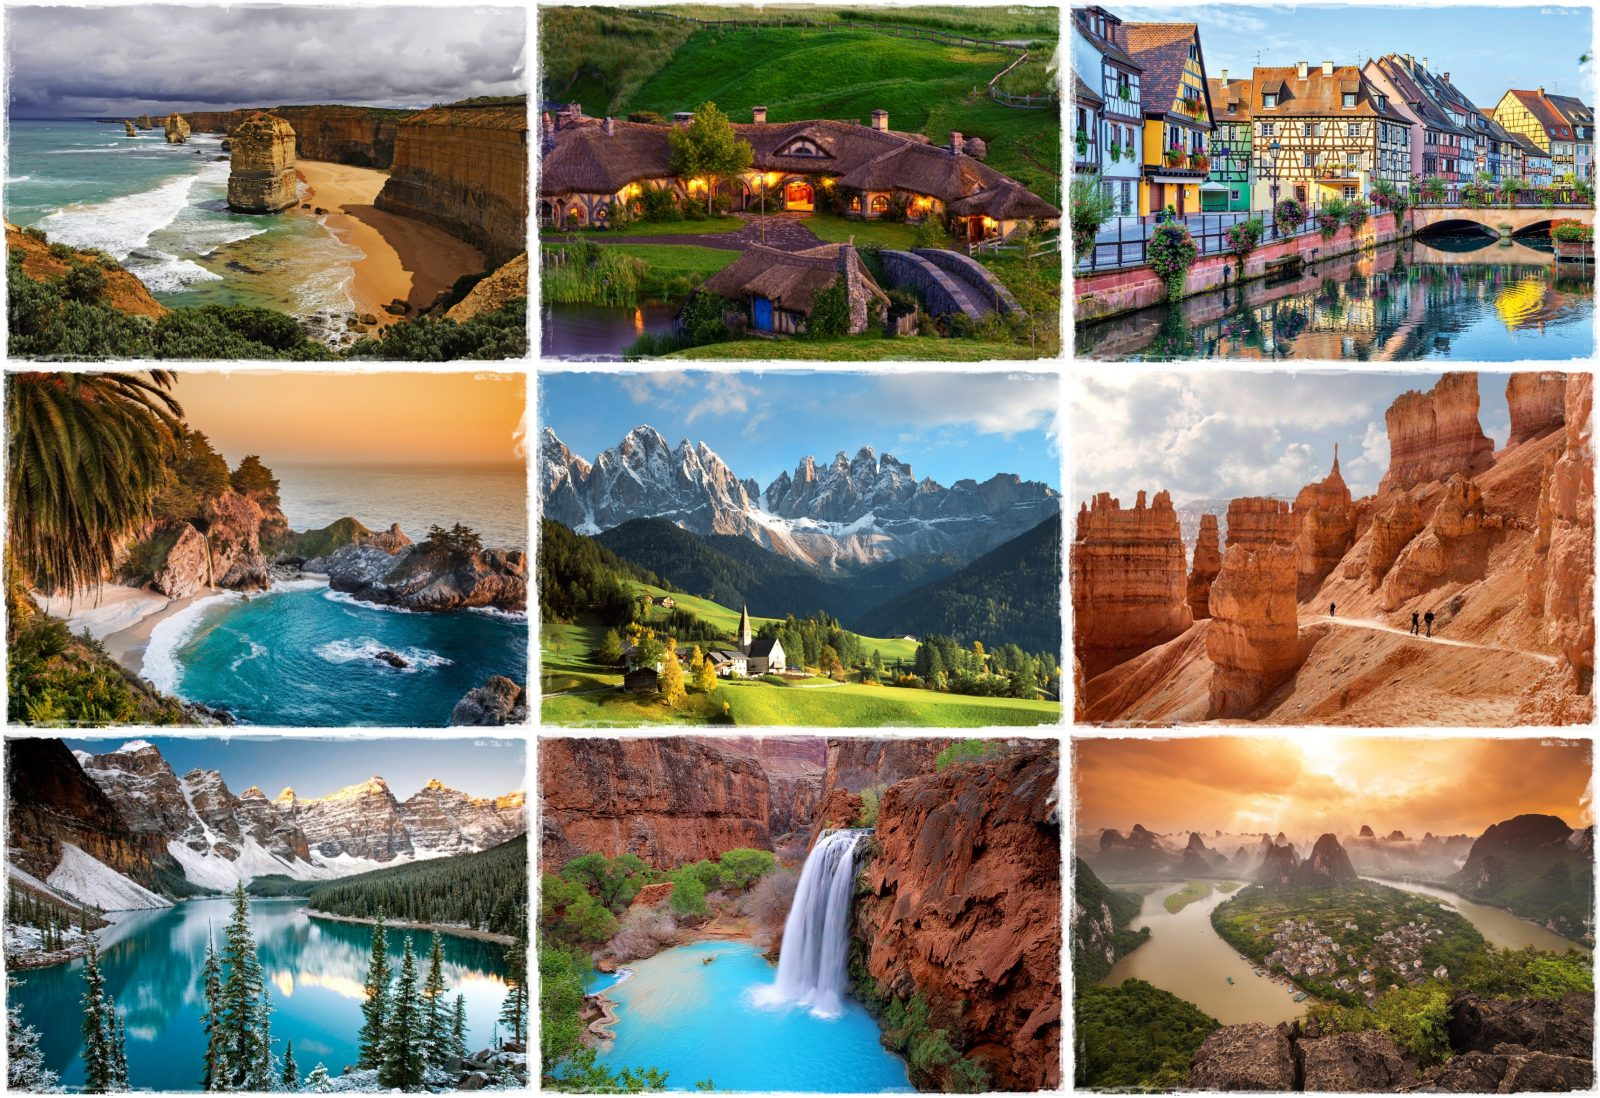 TOP 10 MOST INSTAGRAMMABLE PLACES IN THE WORLD 2021 by Big 7 Travel